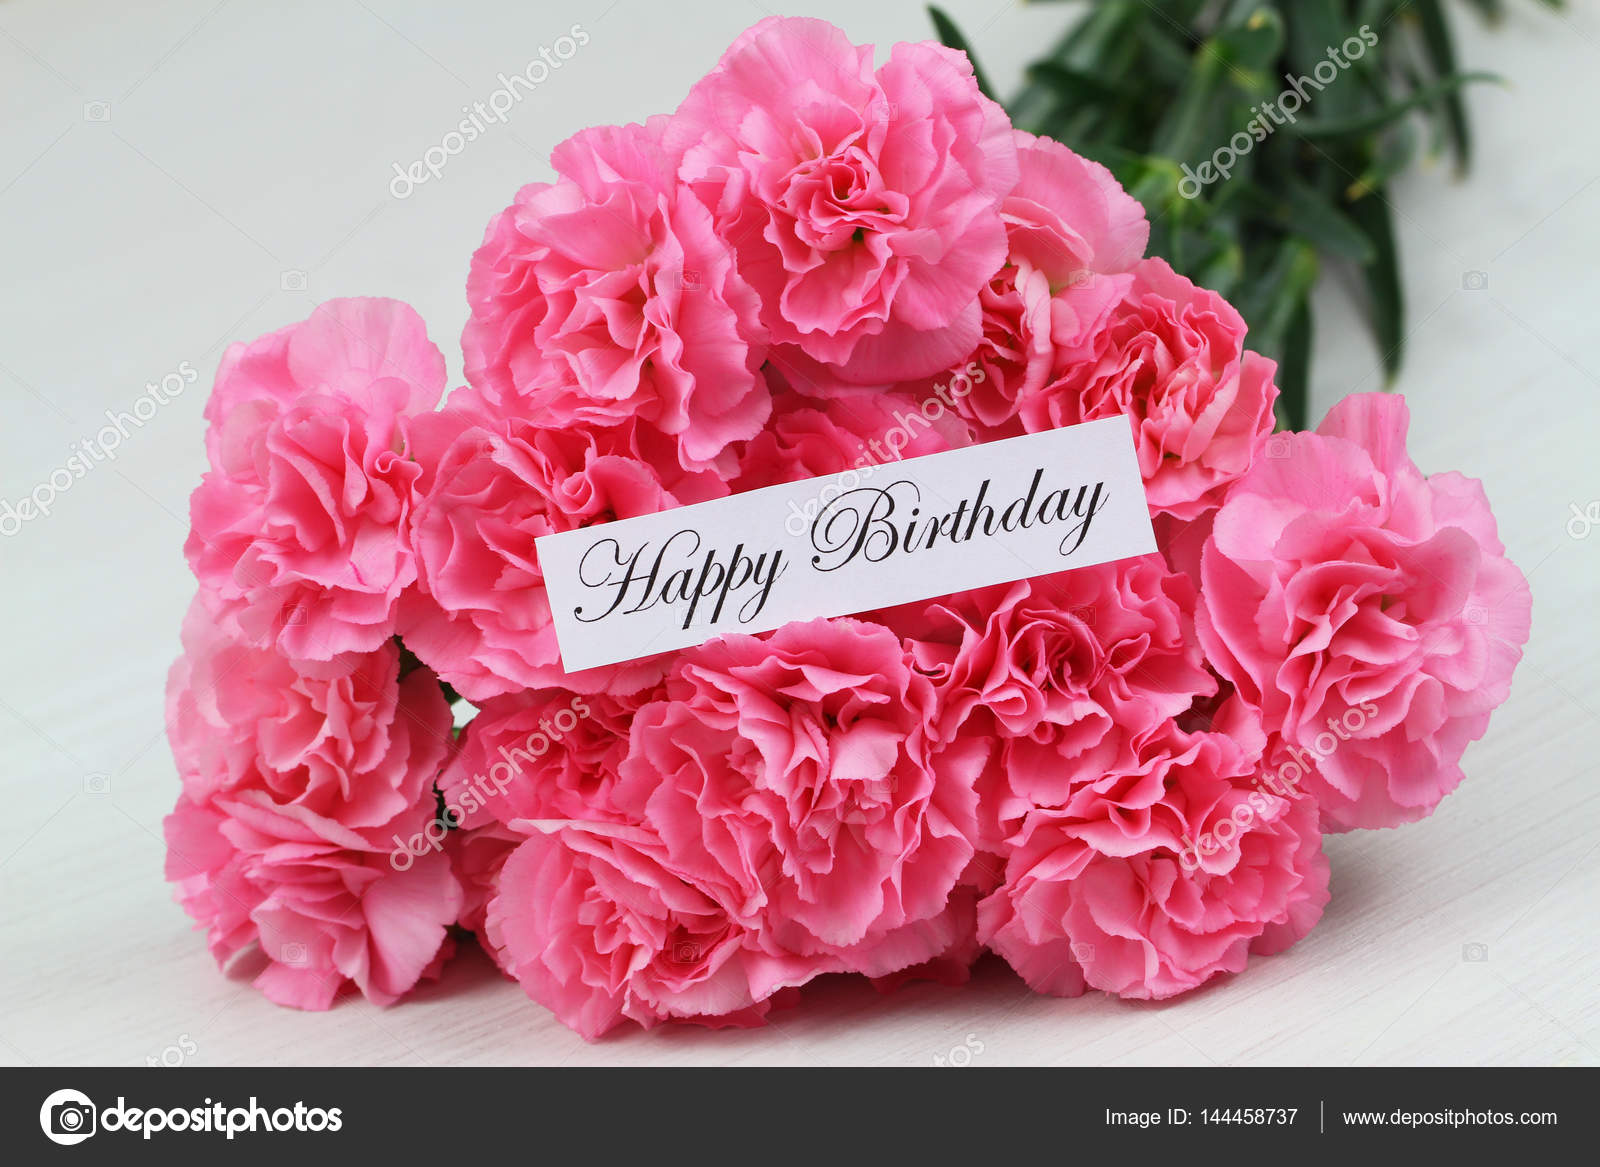 Happy birthday card with pink carnation flowers stock photo happy birthday card with pink carnation flowers stock photo izmirmasajfo